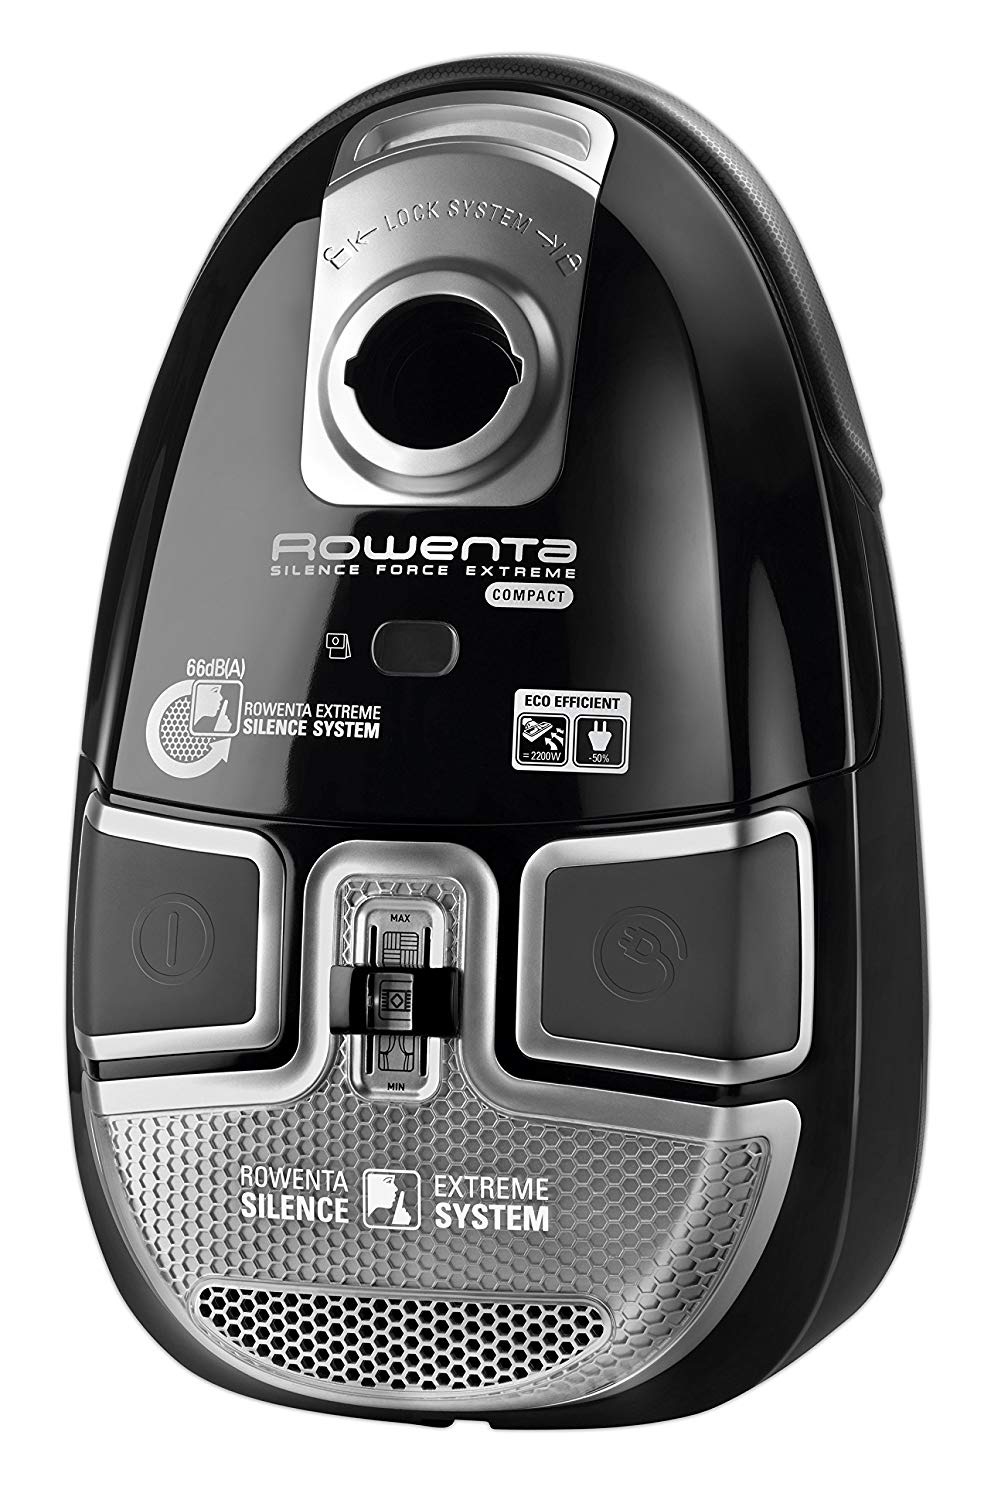 aspirateur rowenta silence force extreme compact